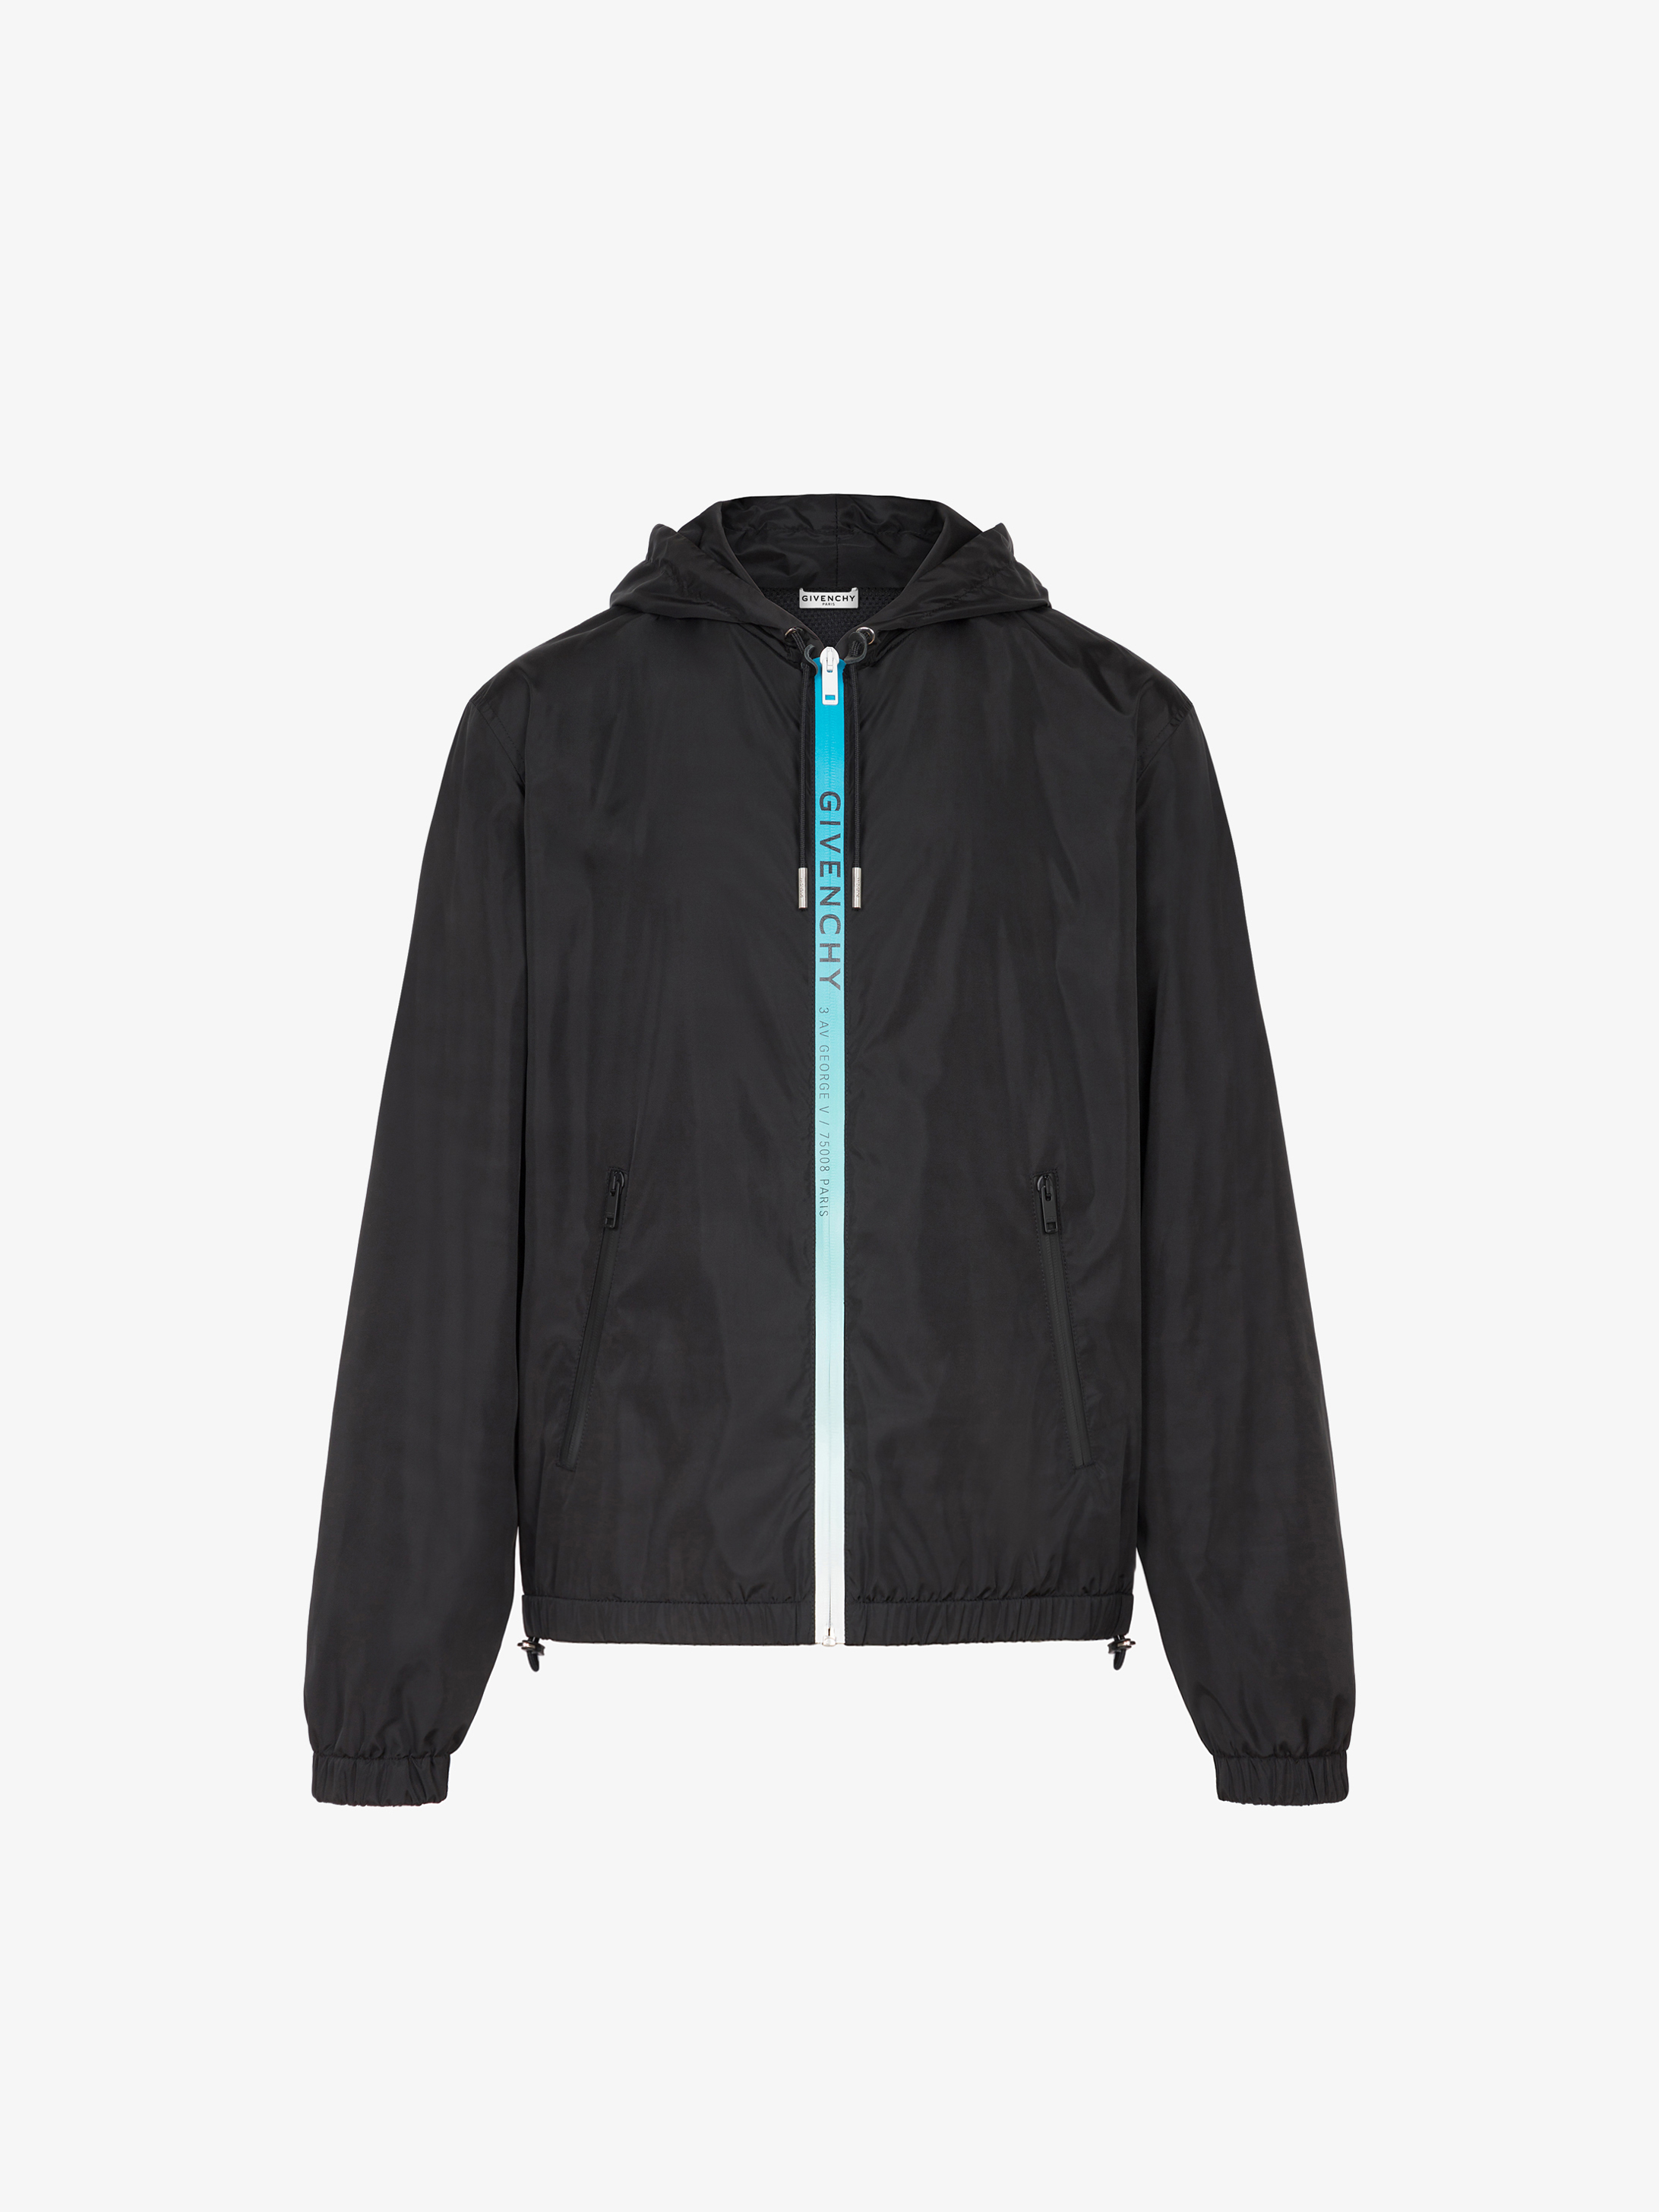 GIVENCHY Rings printed windbreaker in nylon